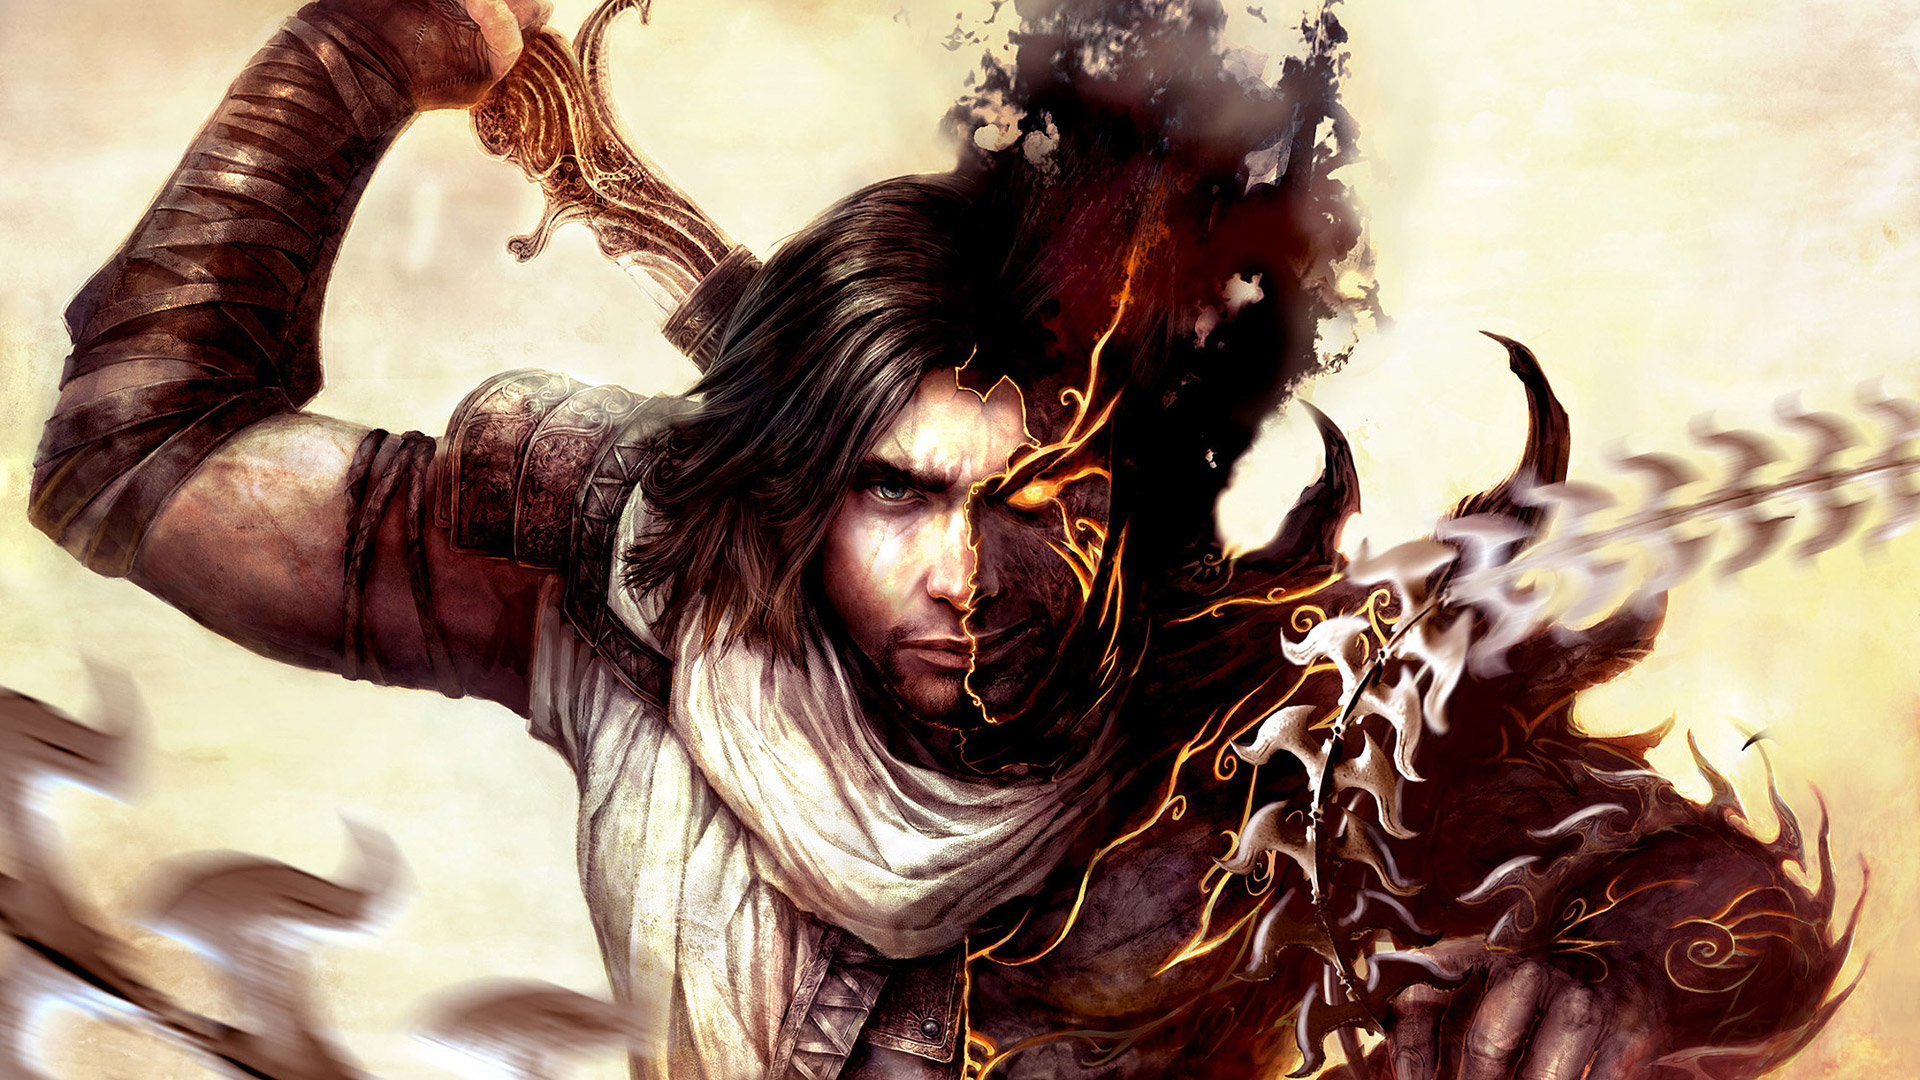 Prince of Persia: The Two Thrones Wallpaper in 1920x1080